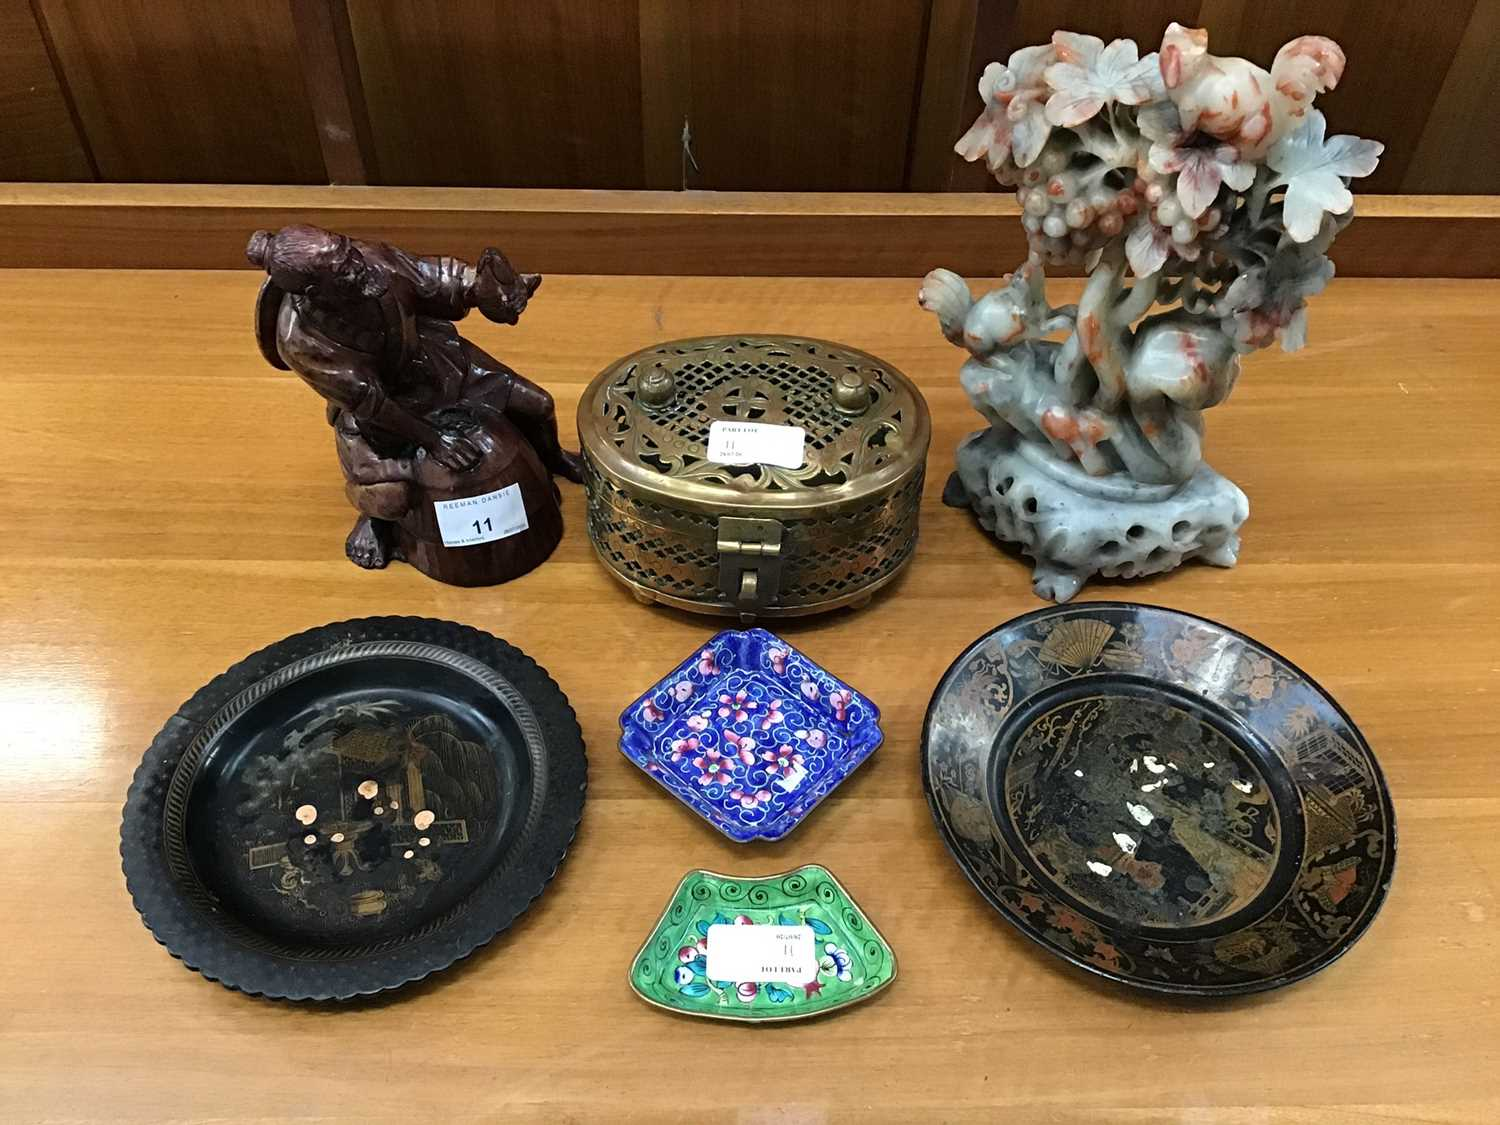 Lot 11-Oriental soapstone and resin carved figures, together with two lacquered papier-mâché dishes and other oriental items